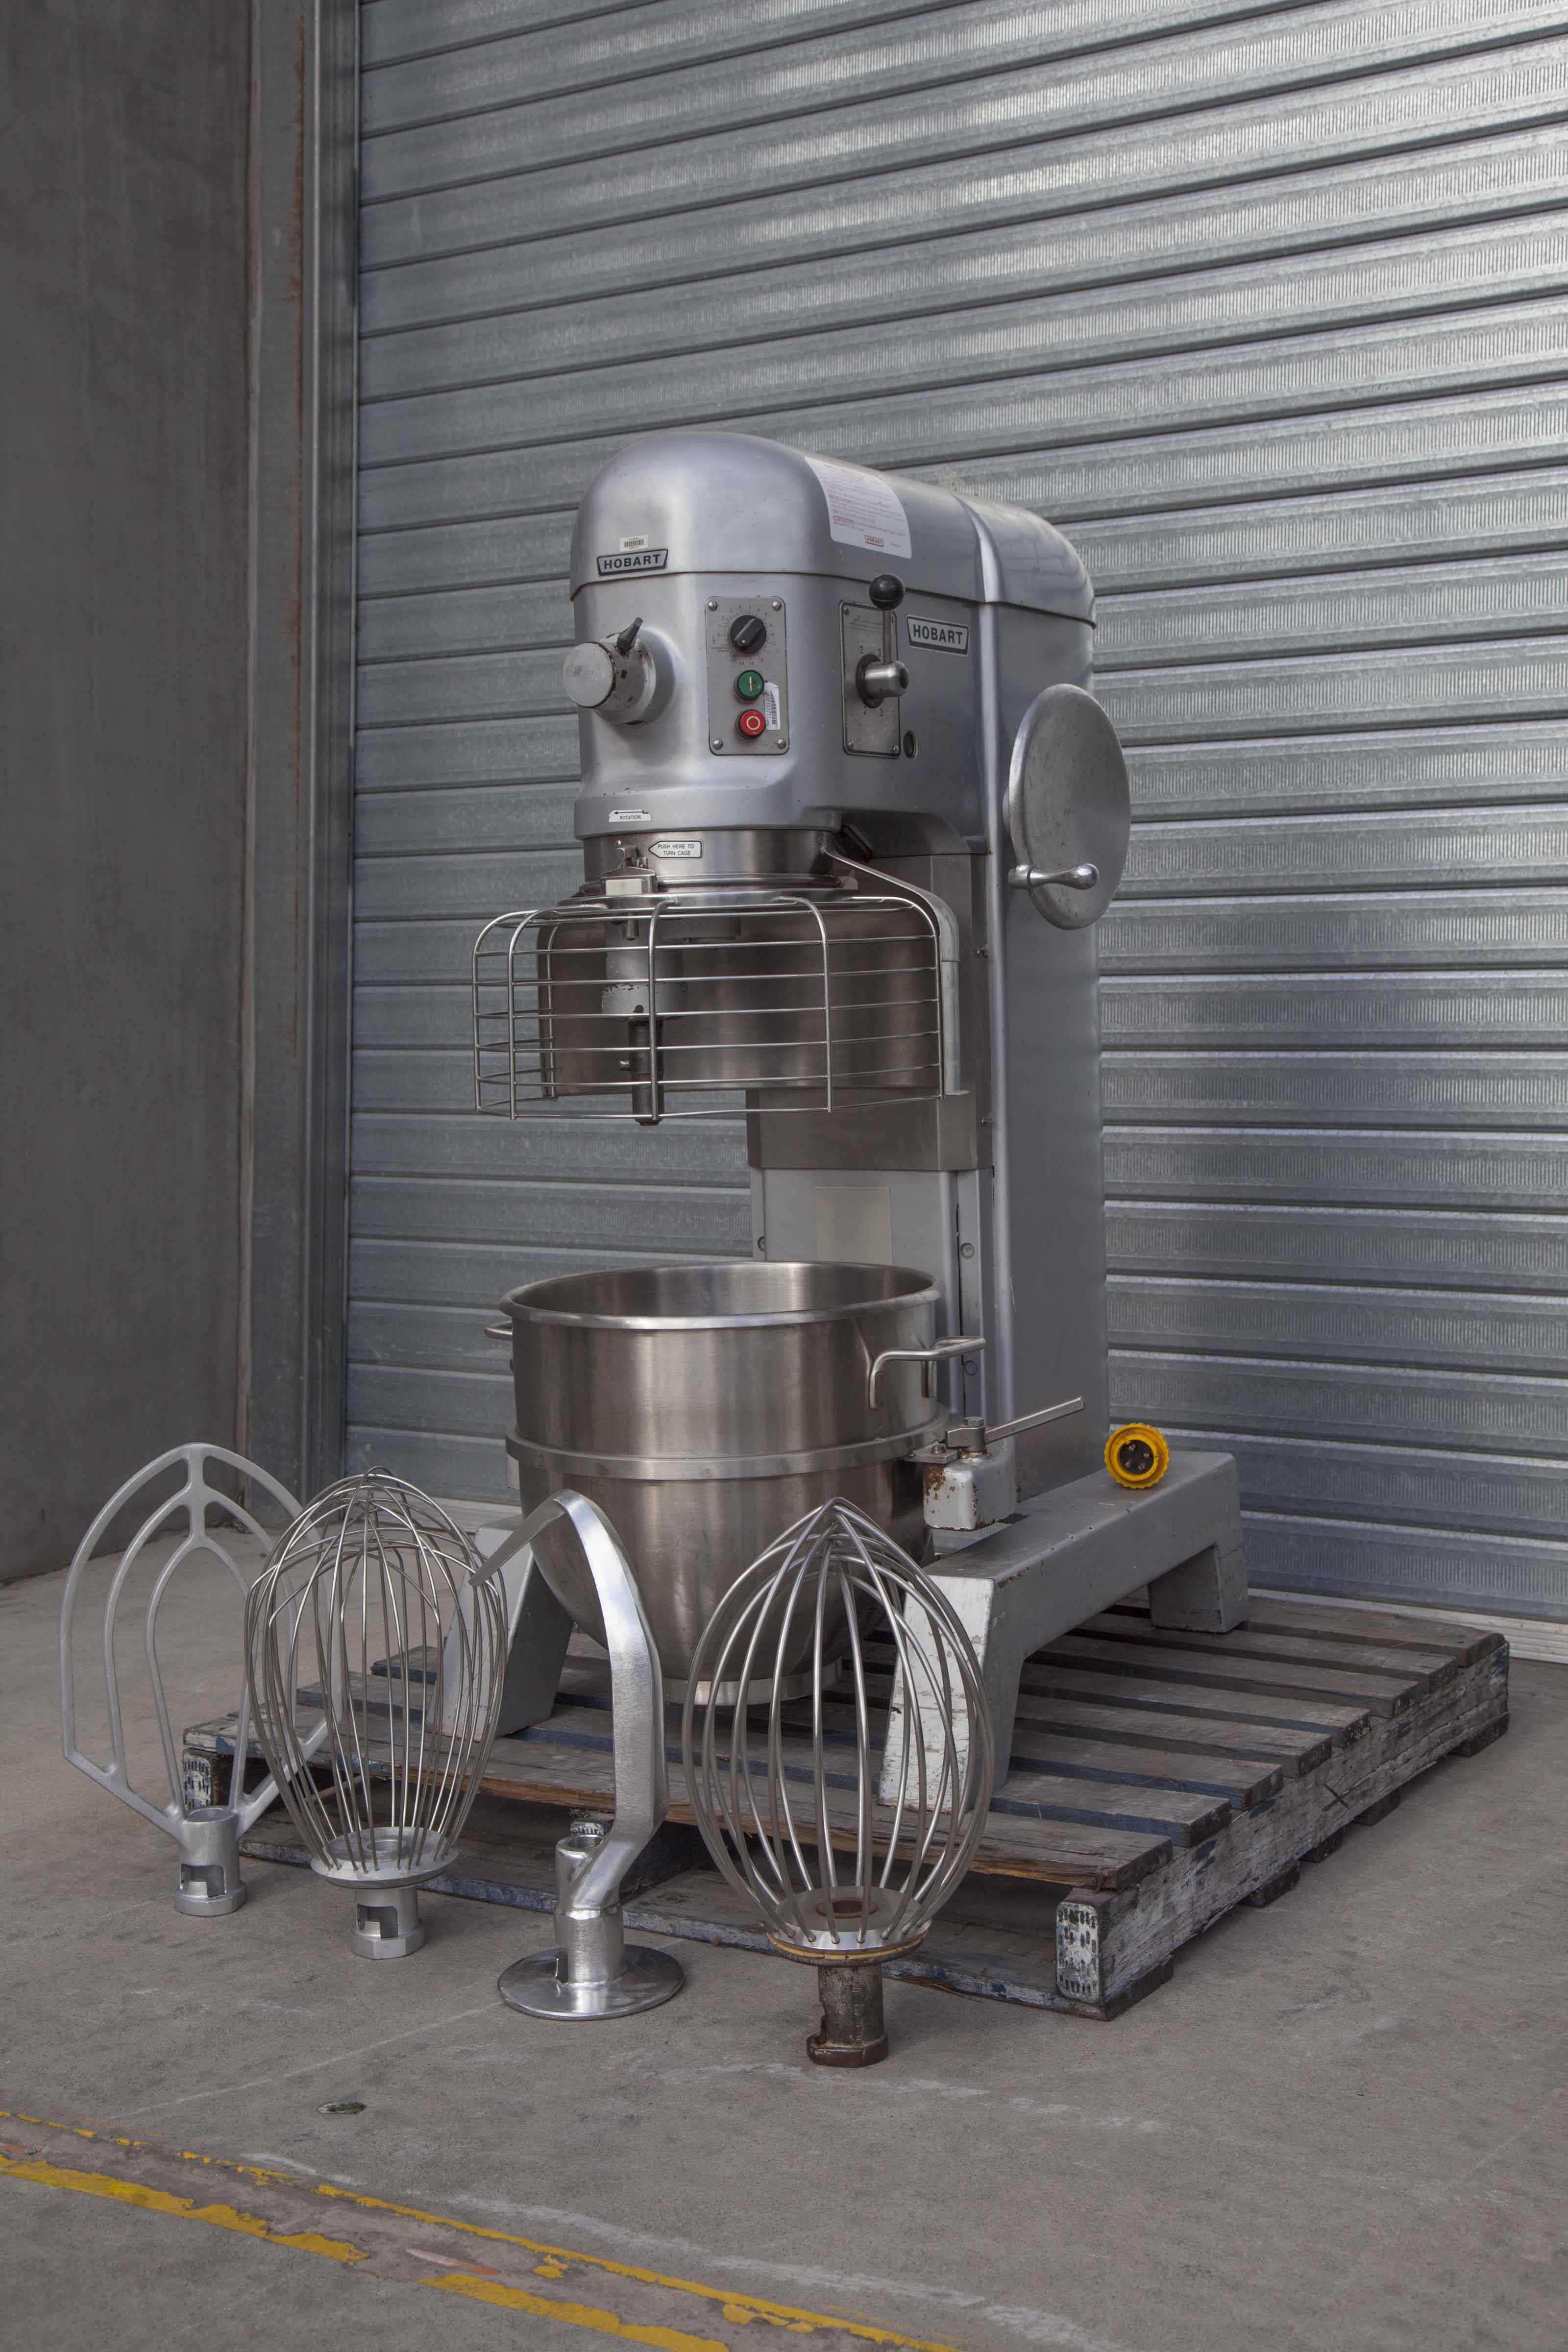 HOBART_H600_60LT_MIXER_GUARD_STAINLESS_BOWL_AND_3_TOOLS.jpg